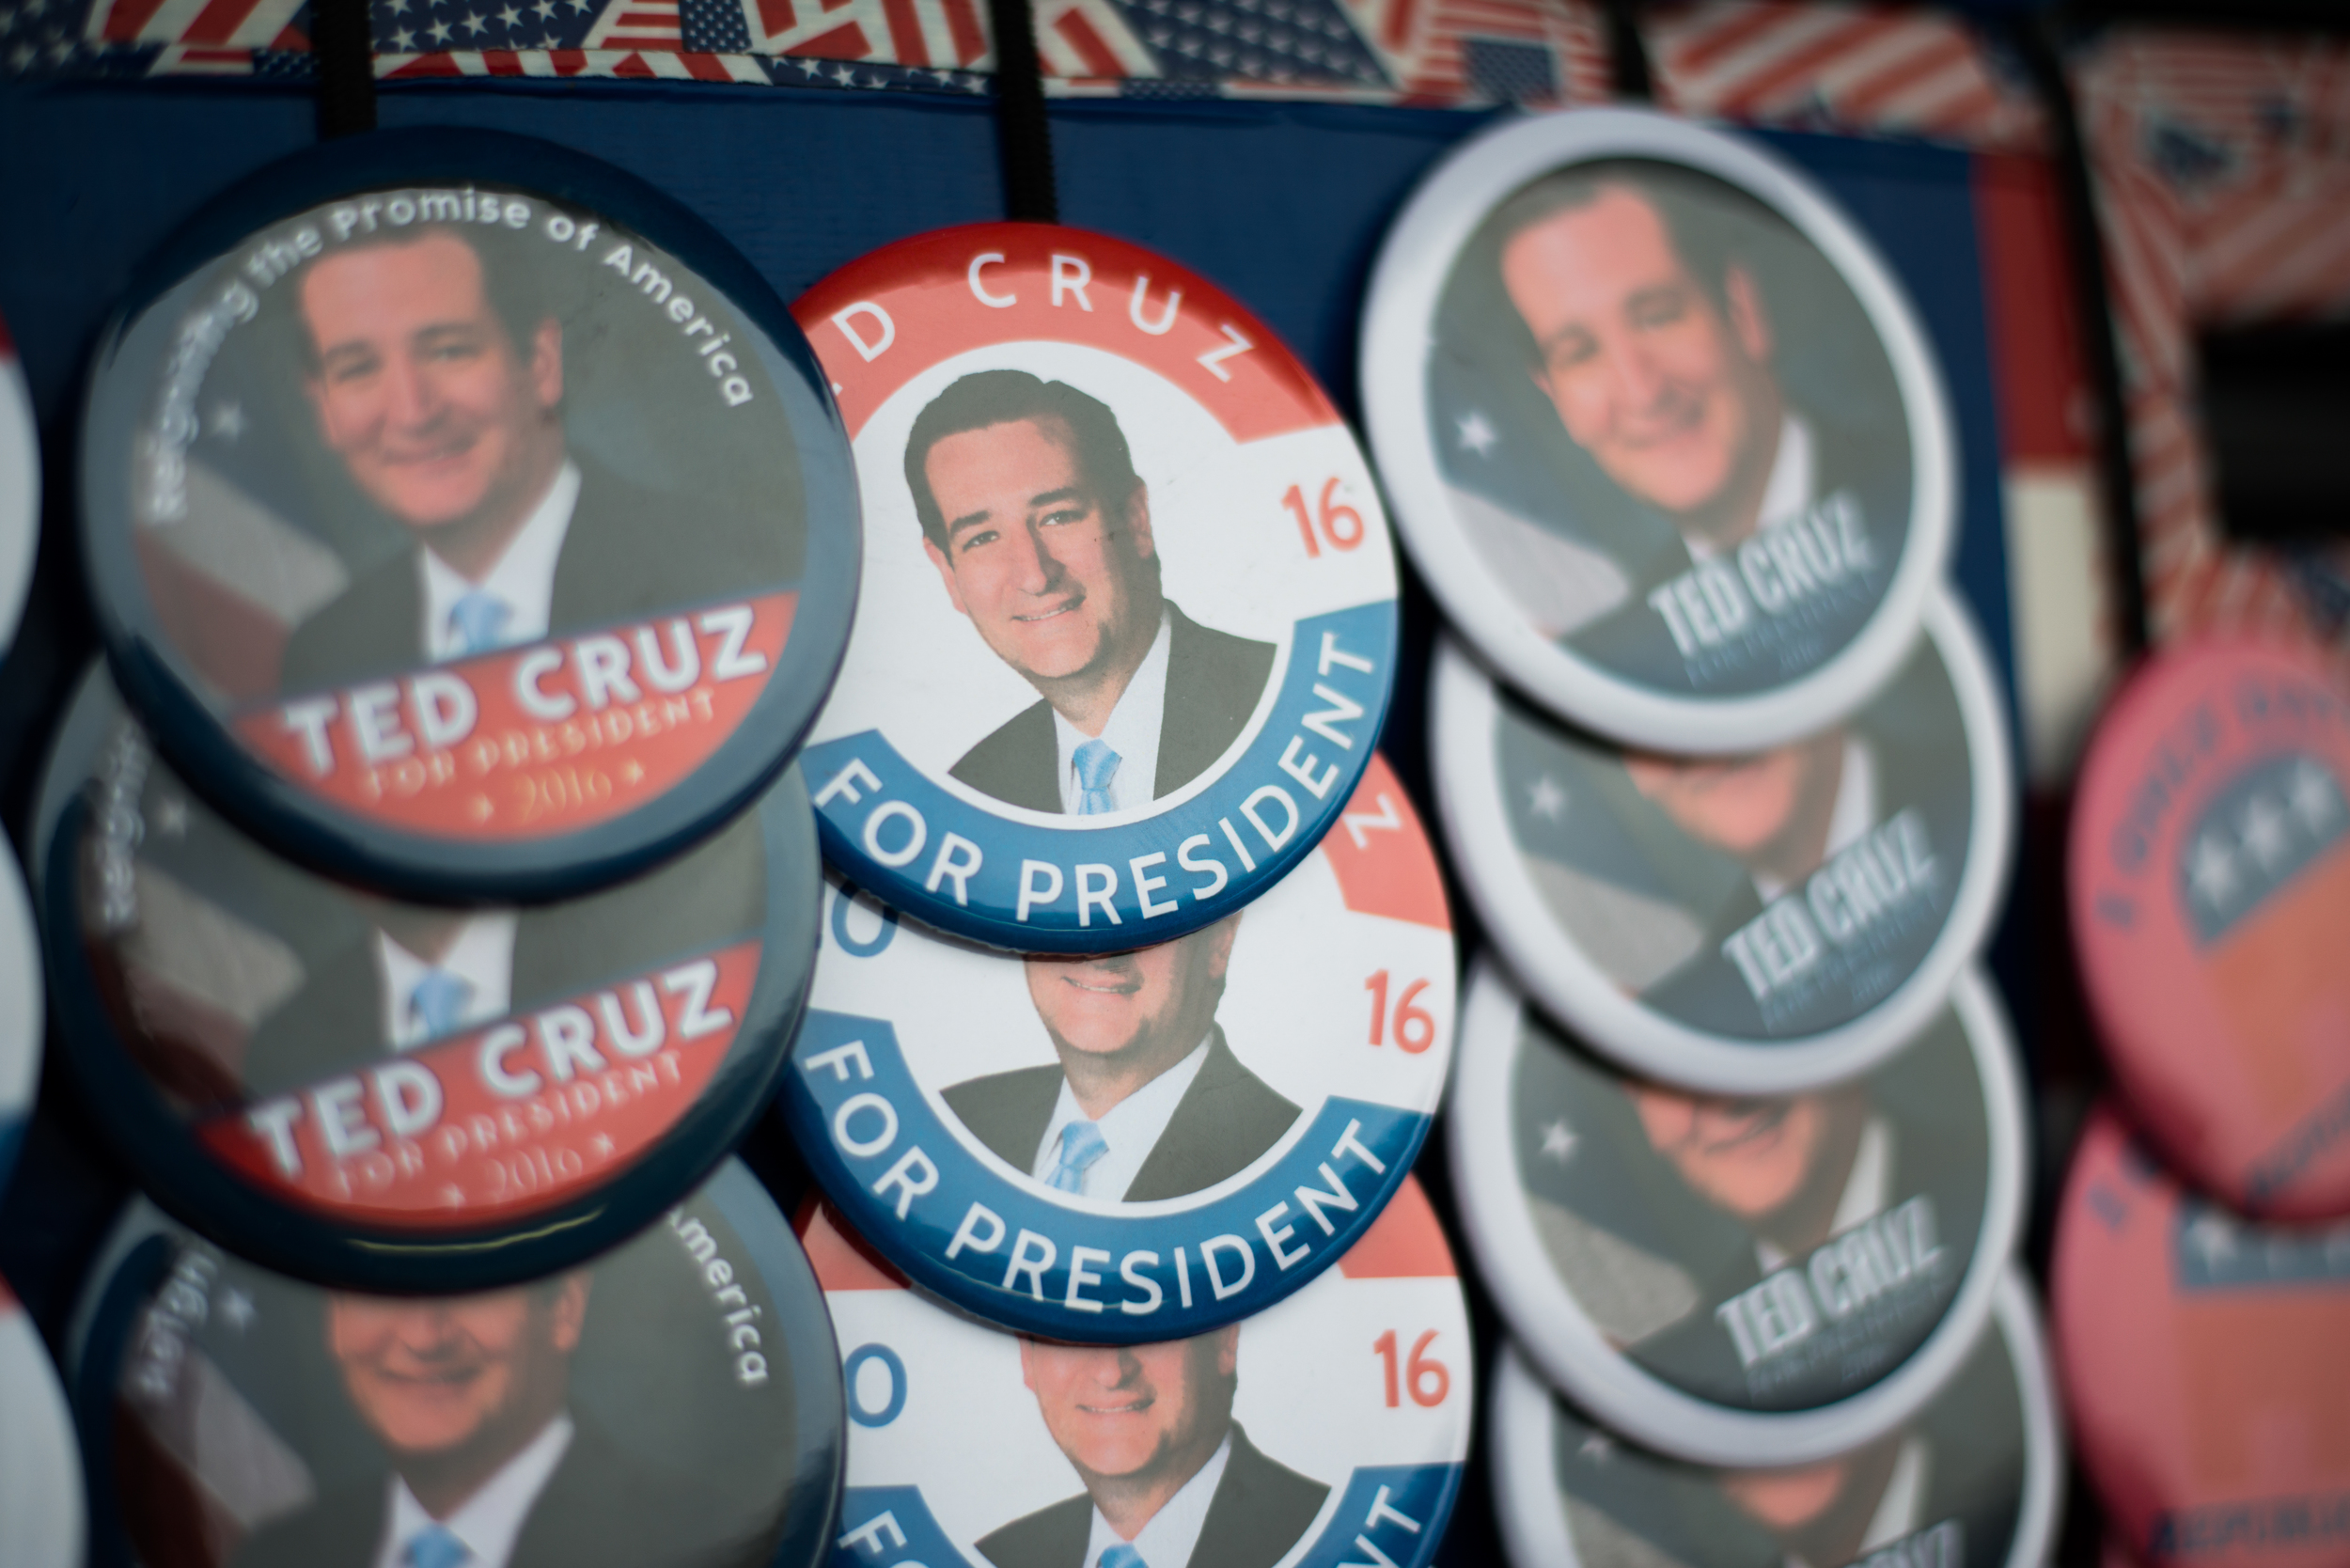 Ted Cruz-themed jacket pins being sold outside Tiger Den restaurant in Lenox, Iowa, on Nov. 28, 2015.